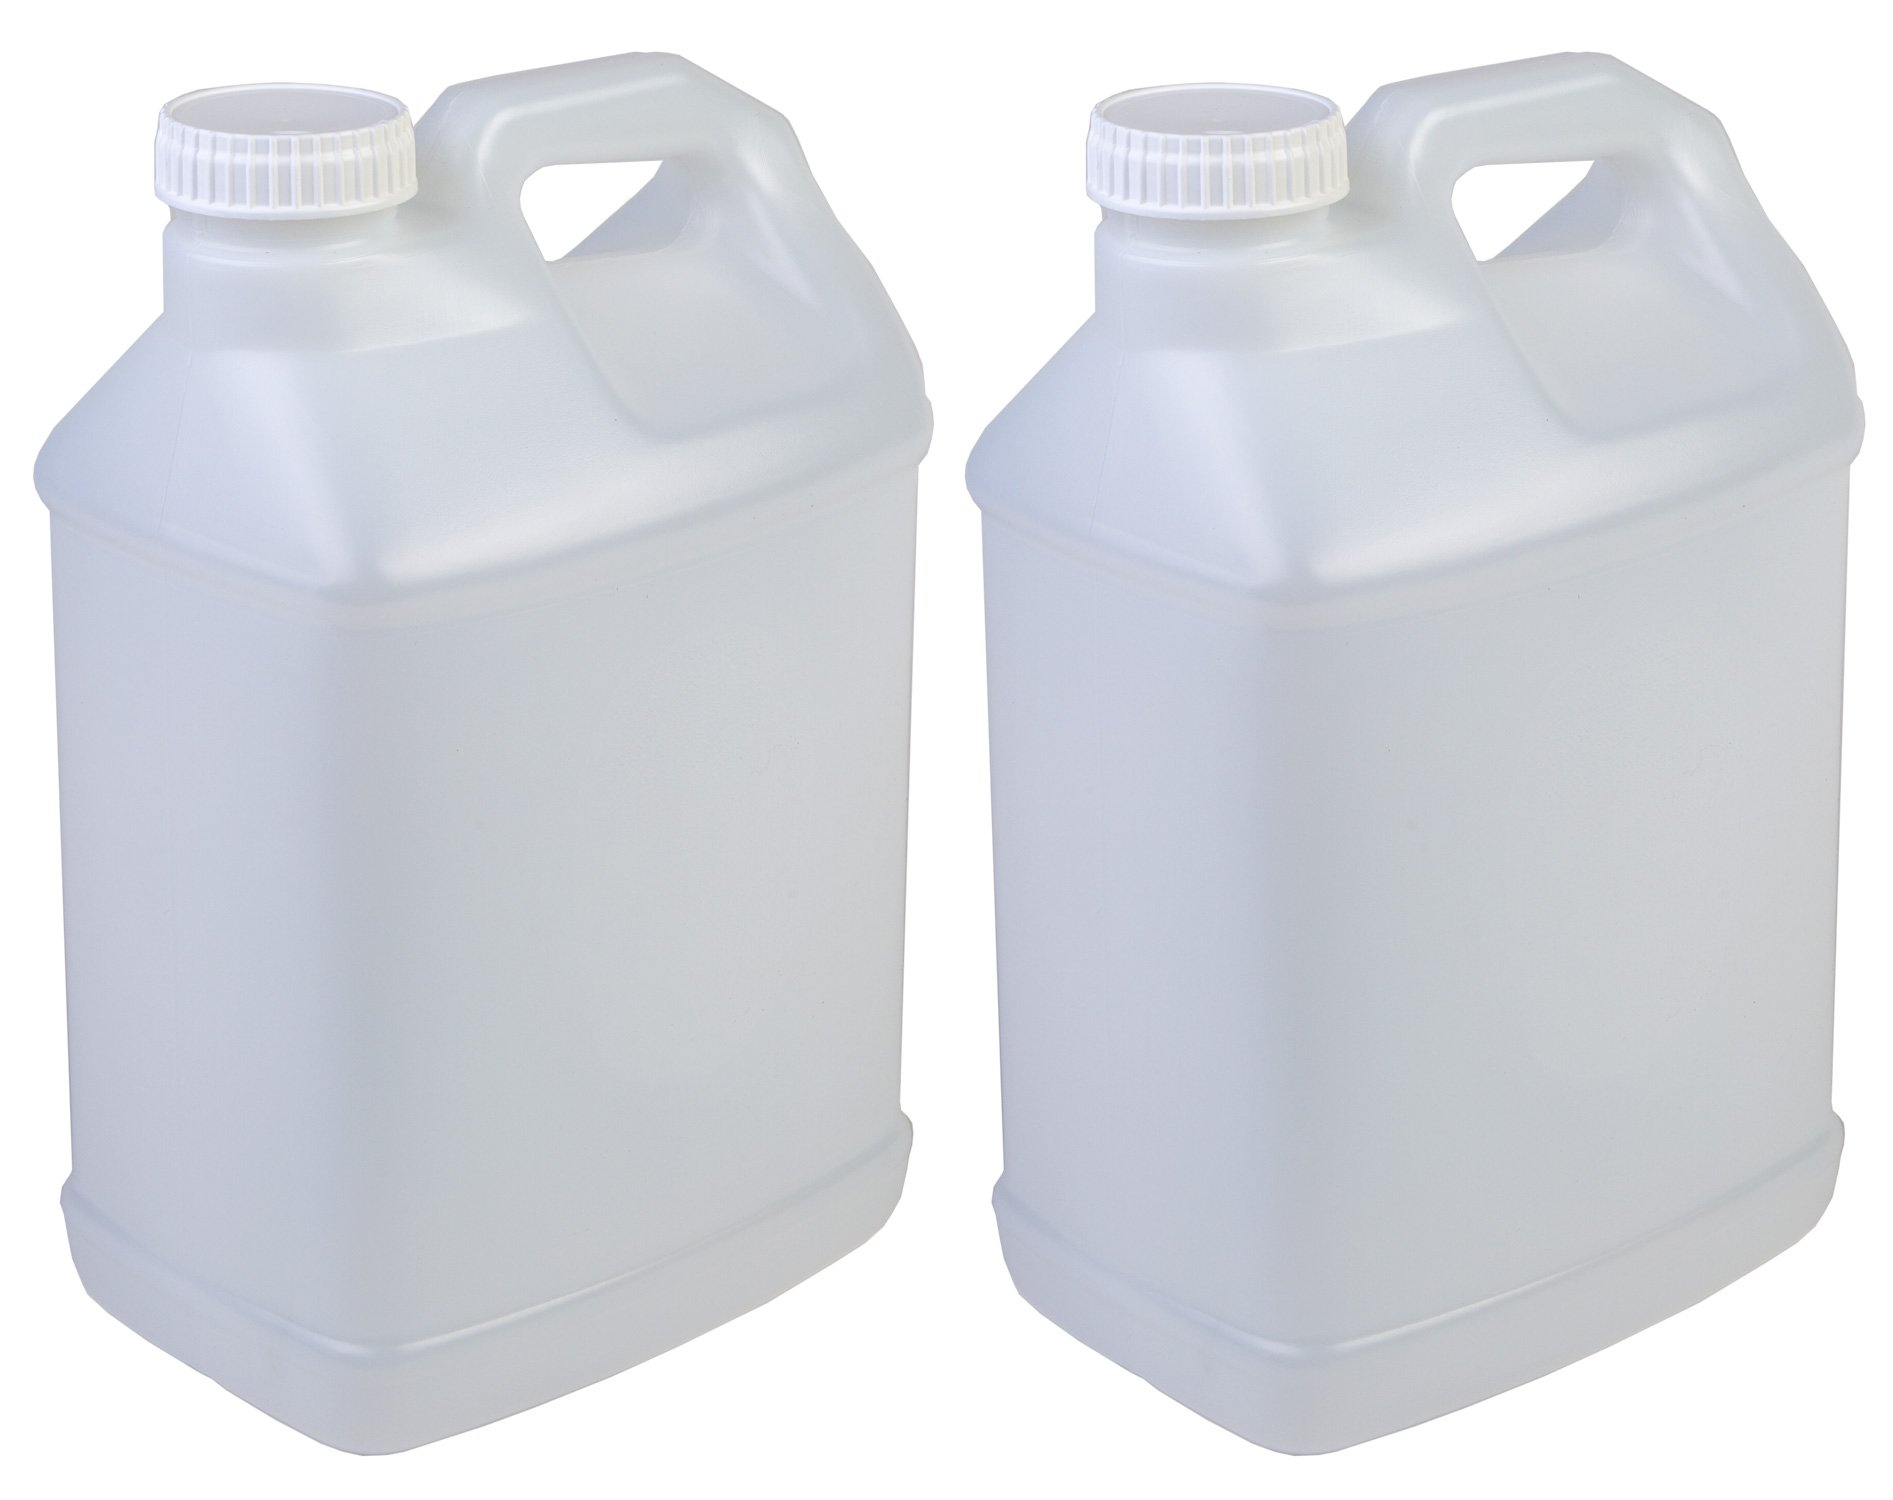 Hudson Exchange 2.5 Gallon Hedpak Container with Cap, HDPE, Natural, 2 Pack